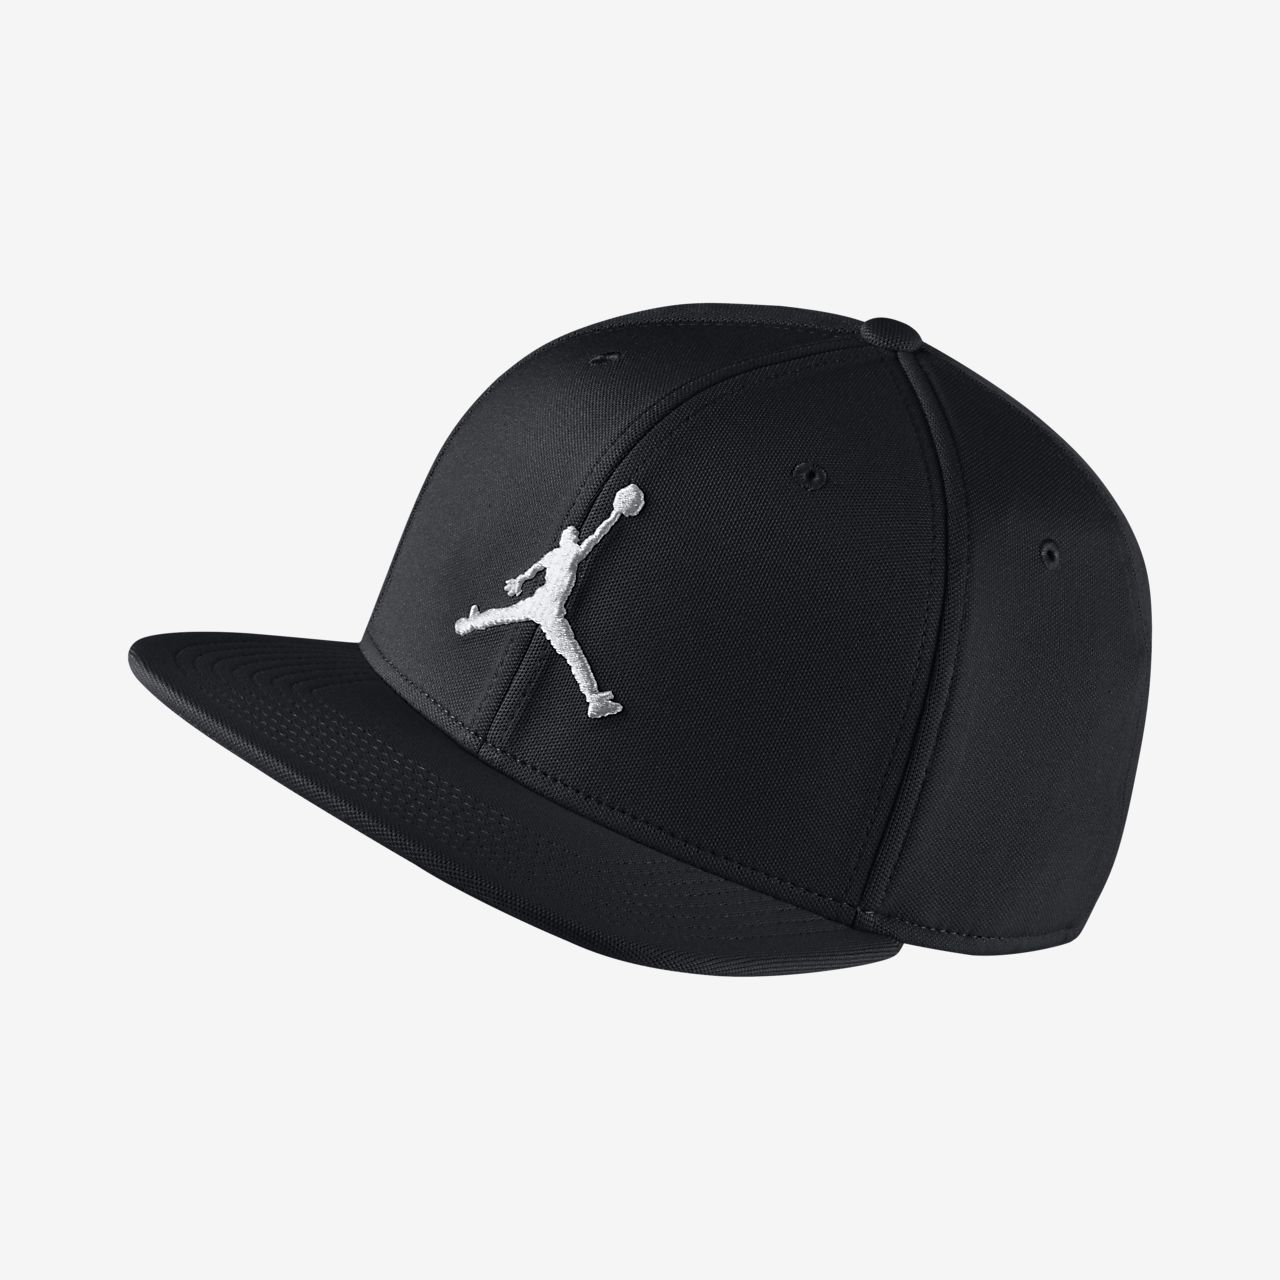 3b6de73e0df Jordan Jumpman Snapback Adjustable Hat. Nike.com AU